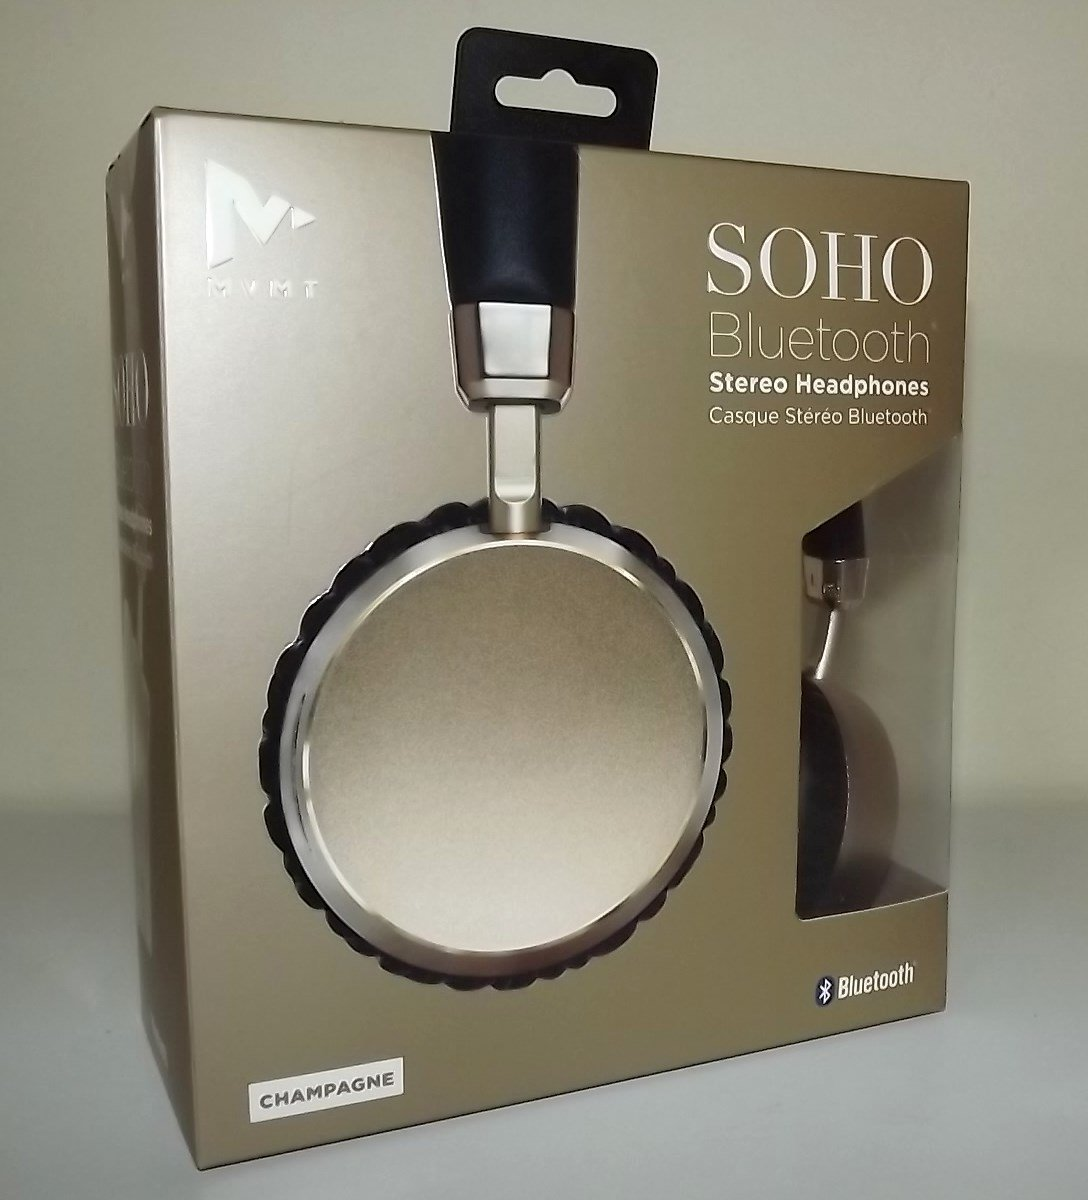 610ad95d1df Amazon.com: MVMT Soho Bluetooth Wireless Rechargeable Stereo Headphones  Champagne: Home Audio & Theater